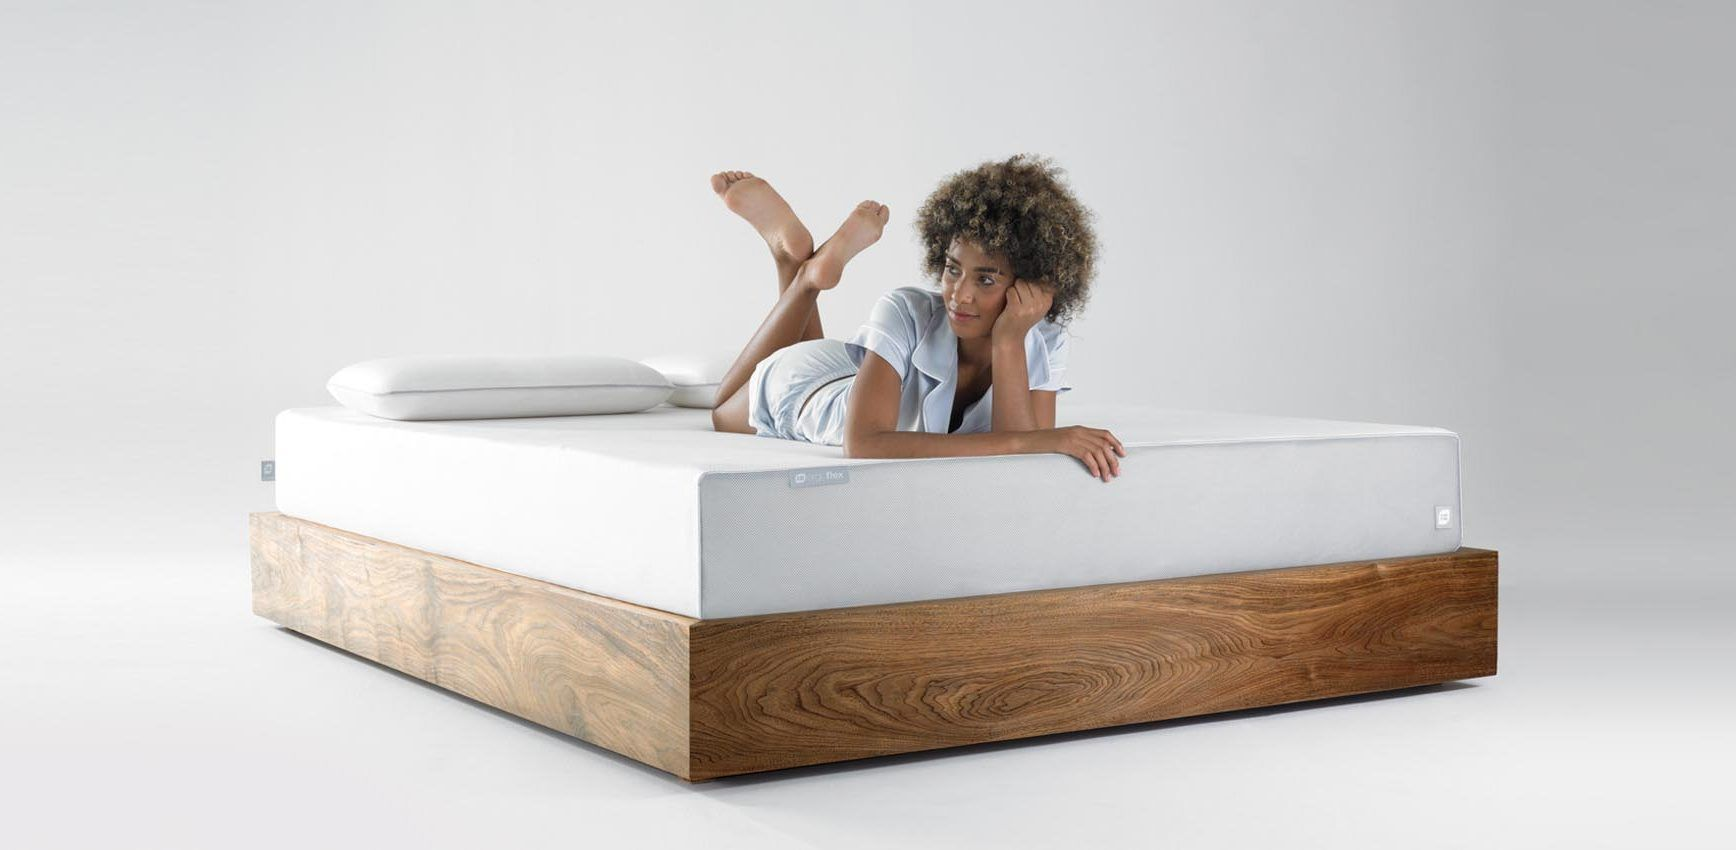 brooklyn bedding has made its signature mattress even better the